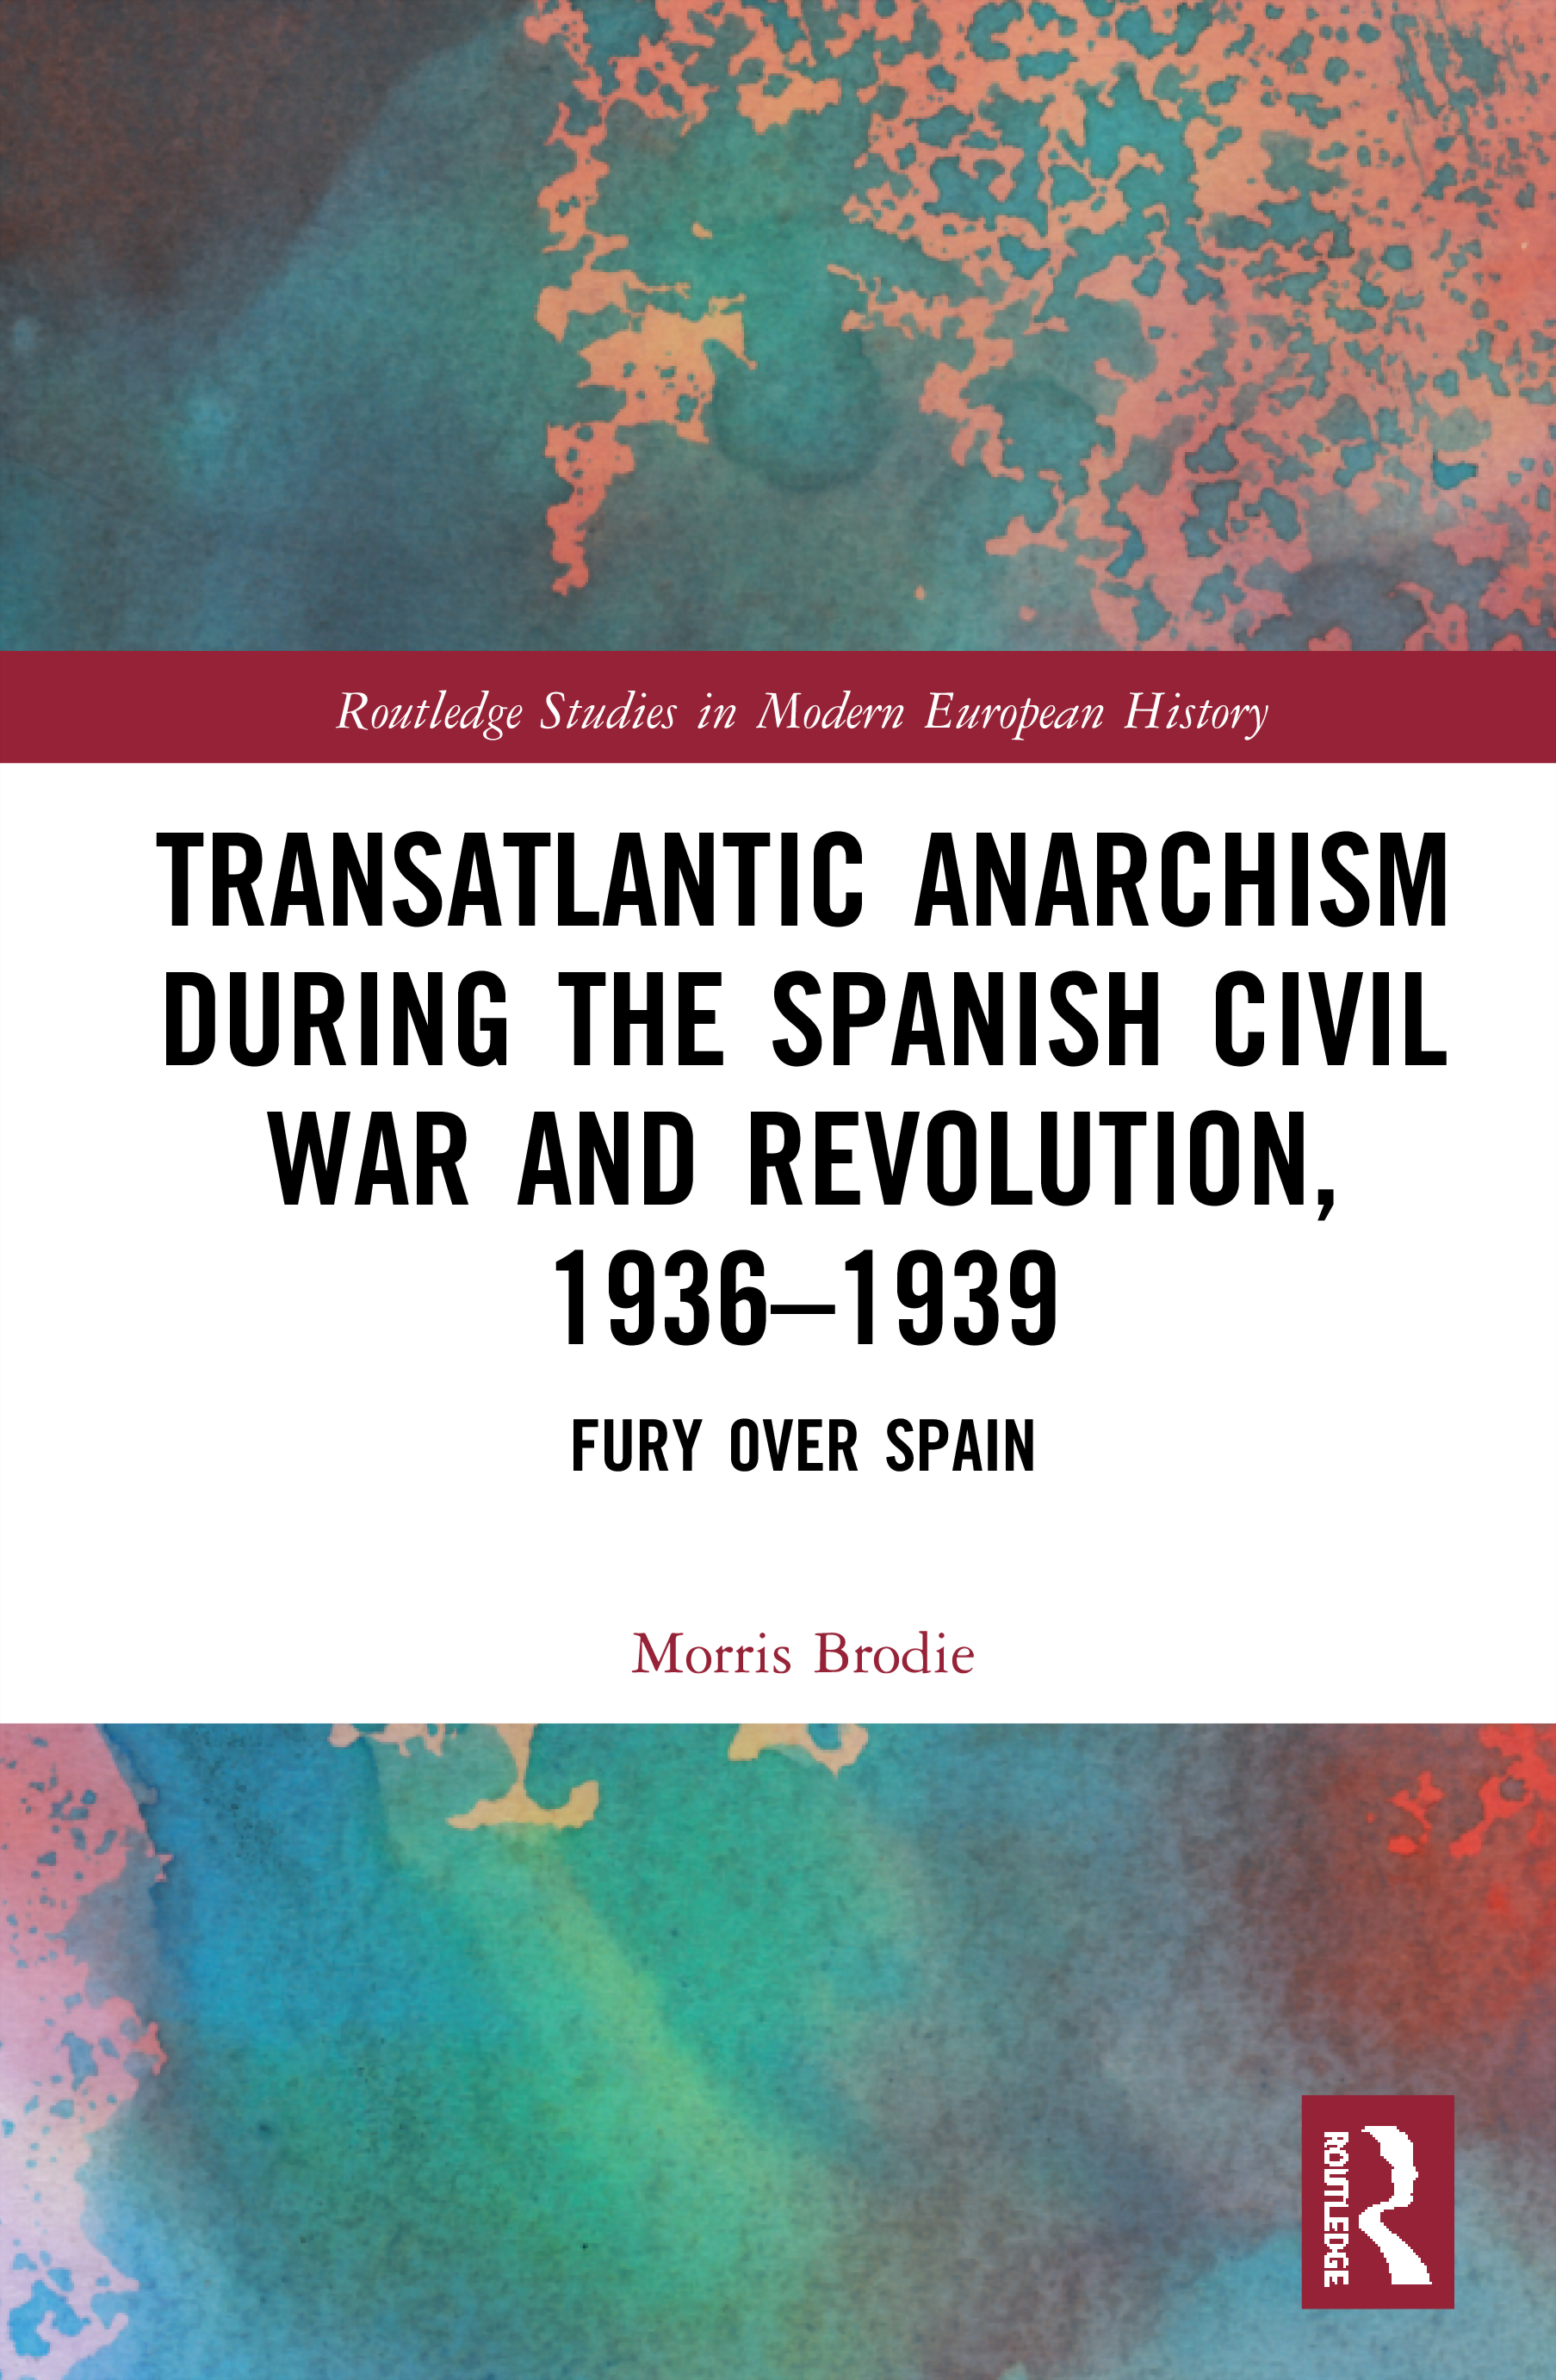 Transatlantic Anarchism during the Spanish Civil War and Revolution, 1936-1939: Fury Over Spain book cover